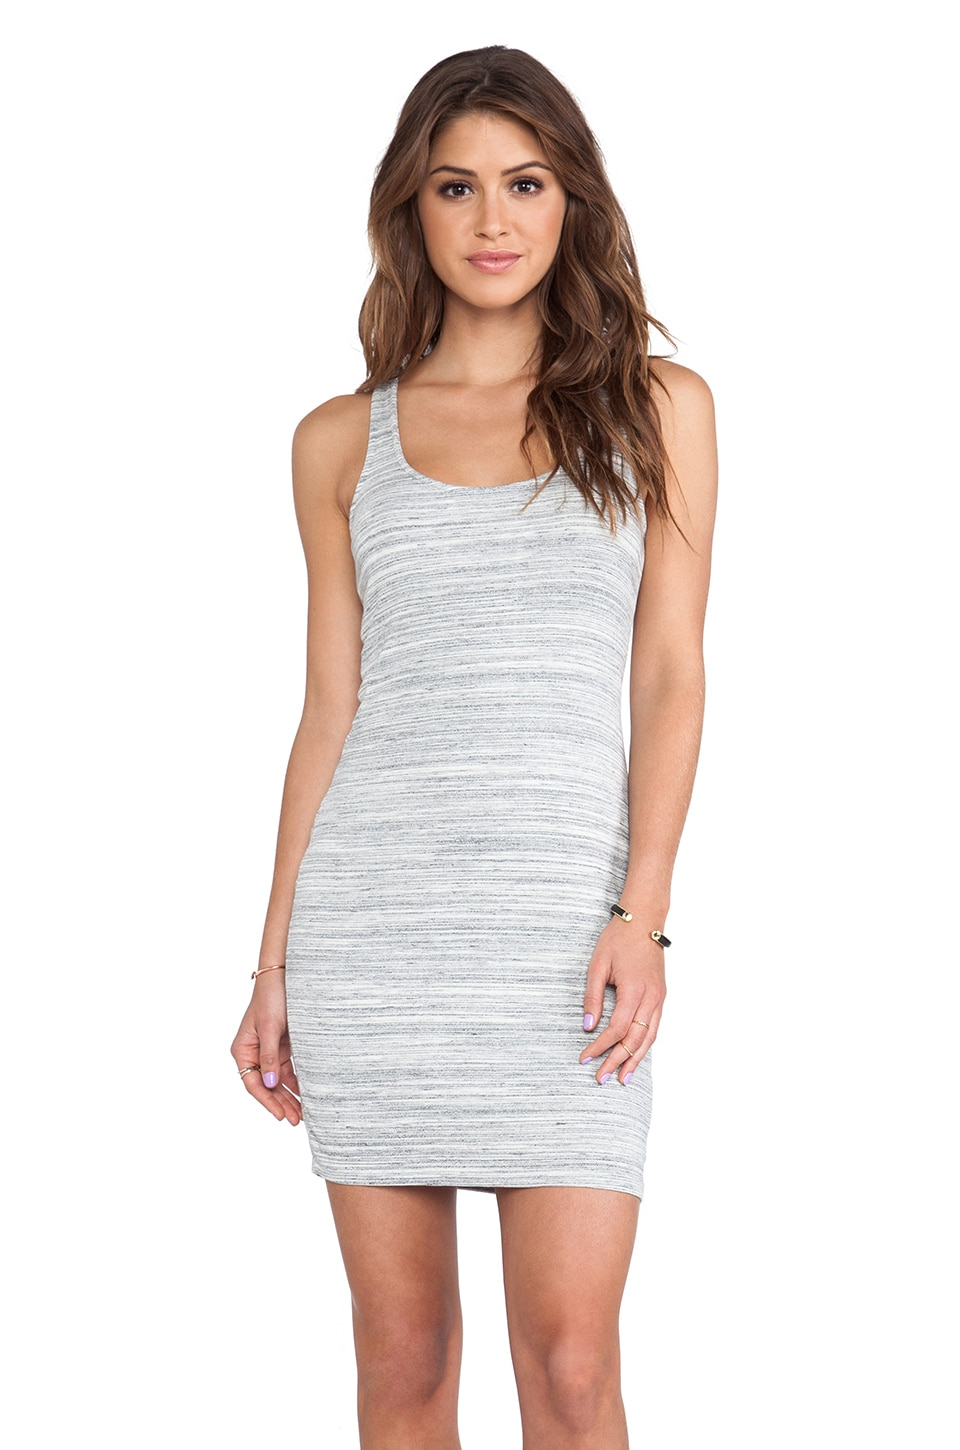 dolan Racerback Tank Dress in Marble